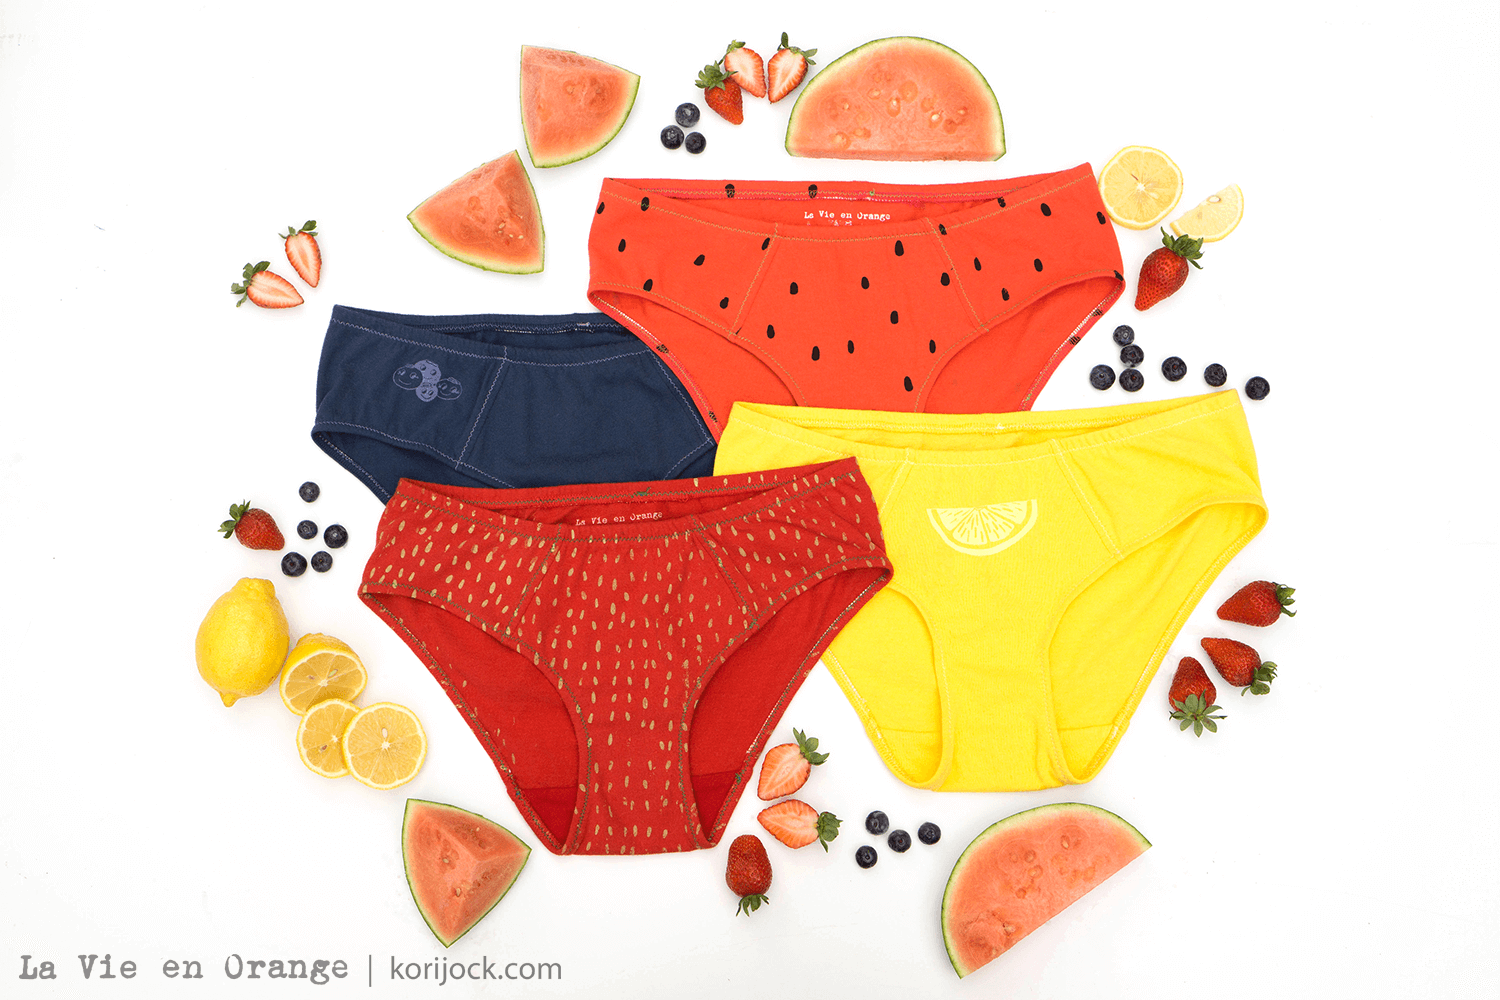 Fruit Salad Handmade Underwear by La Vie en Orange